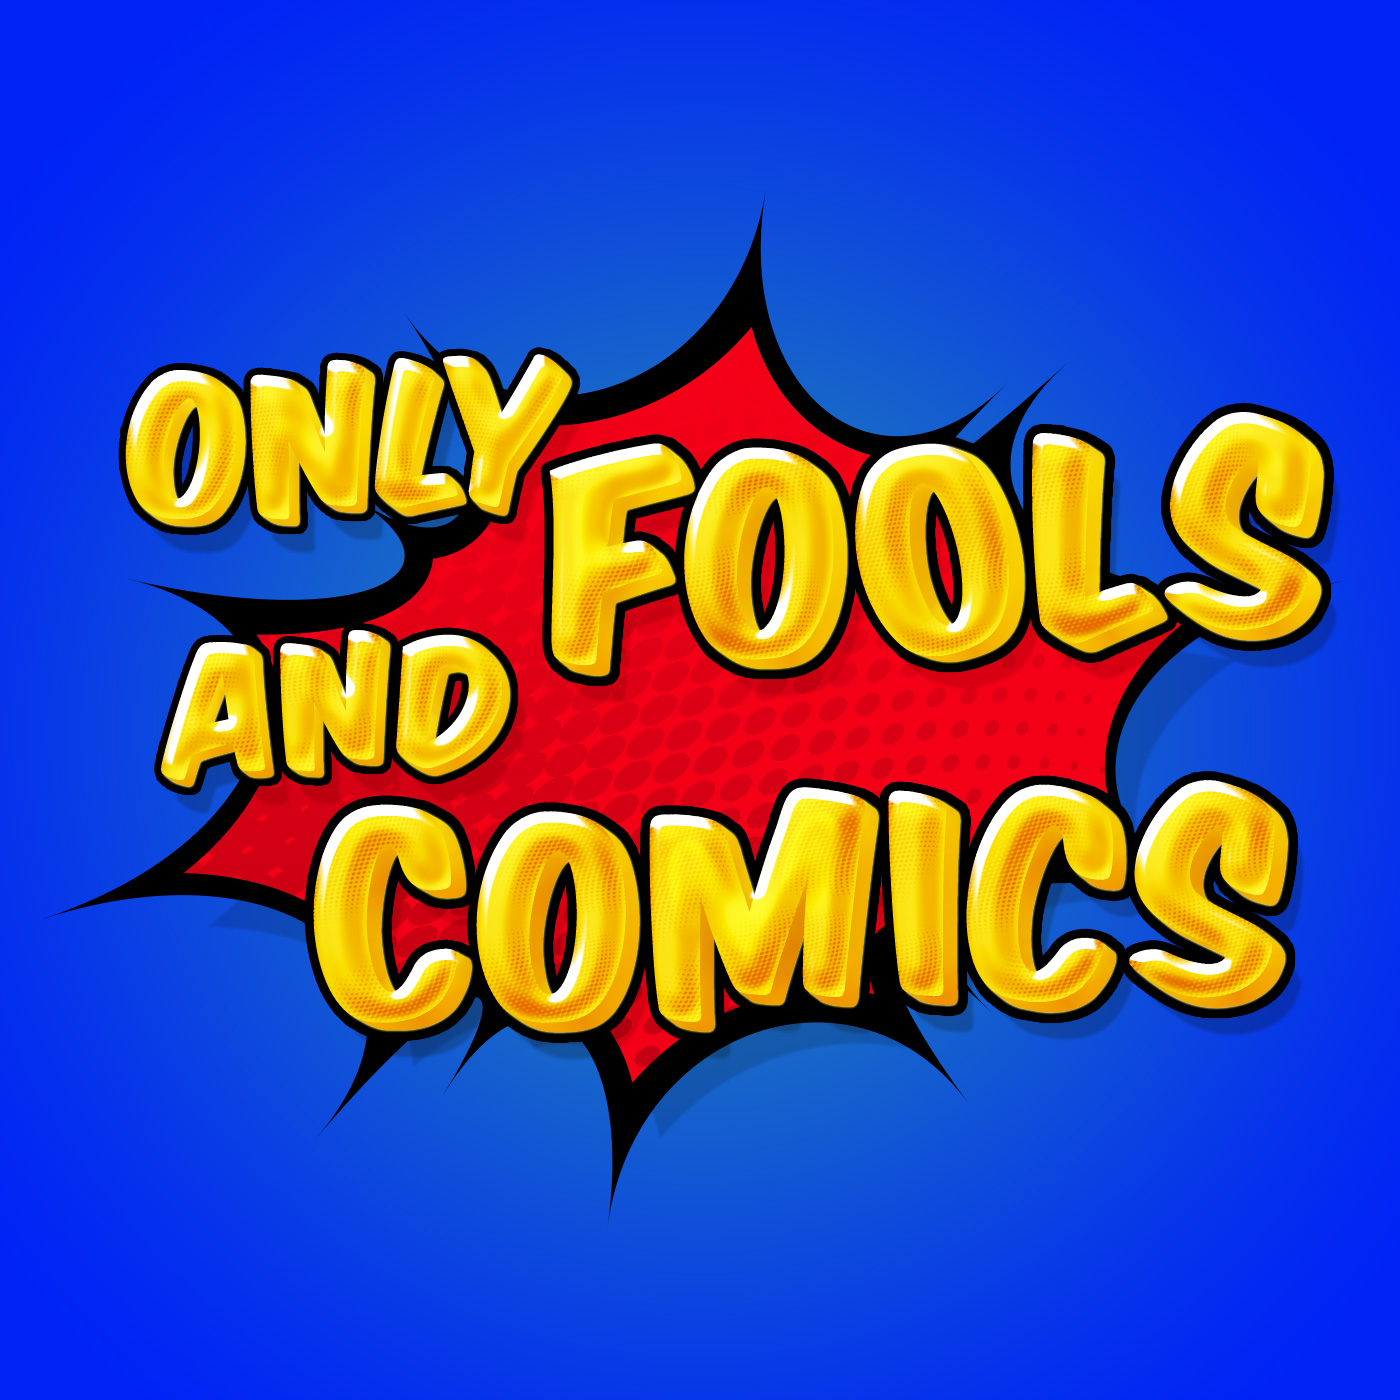 Only Fools and Comics